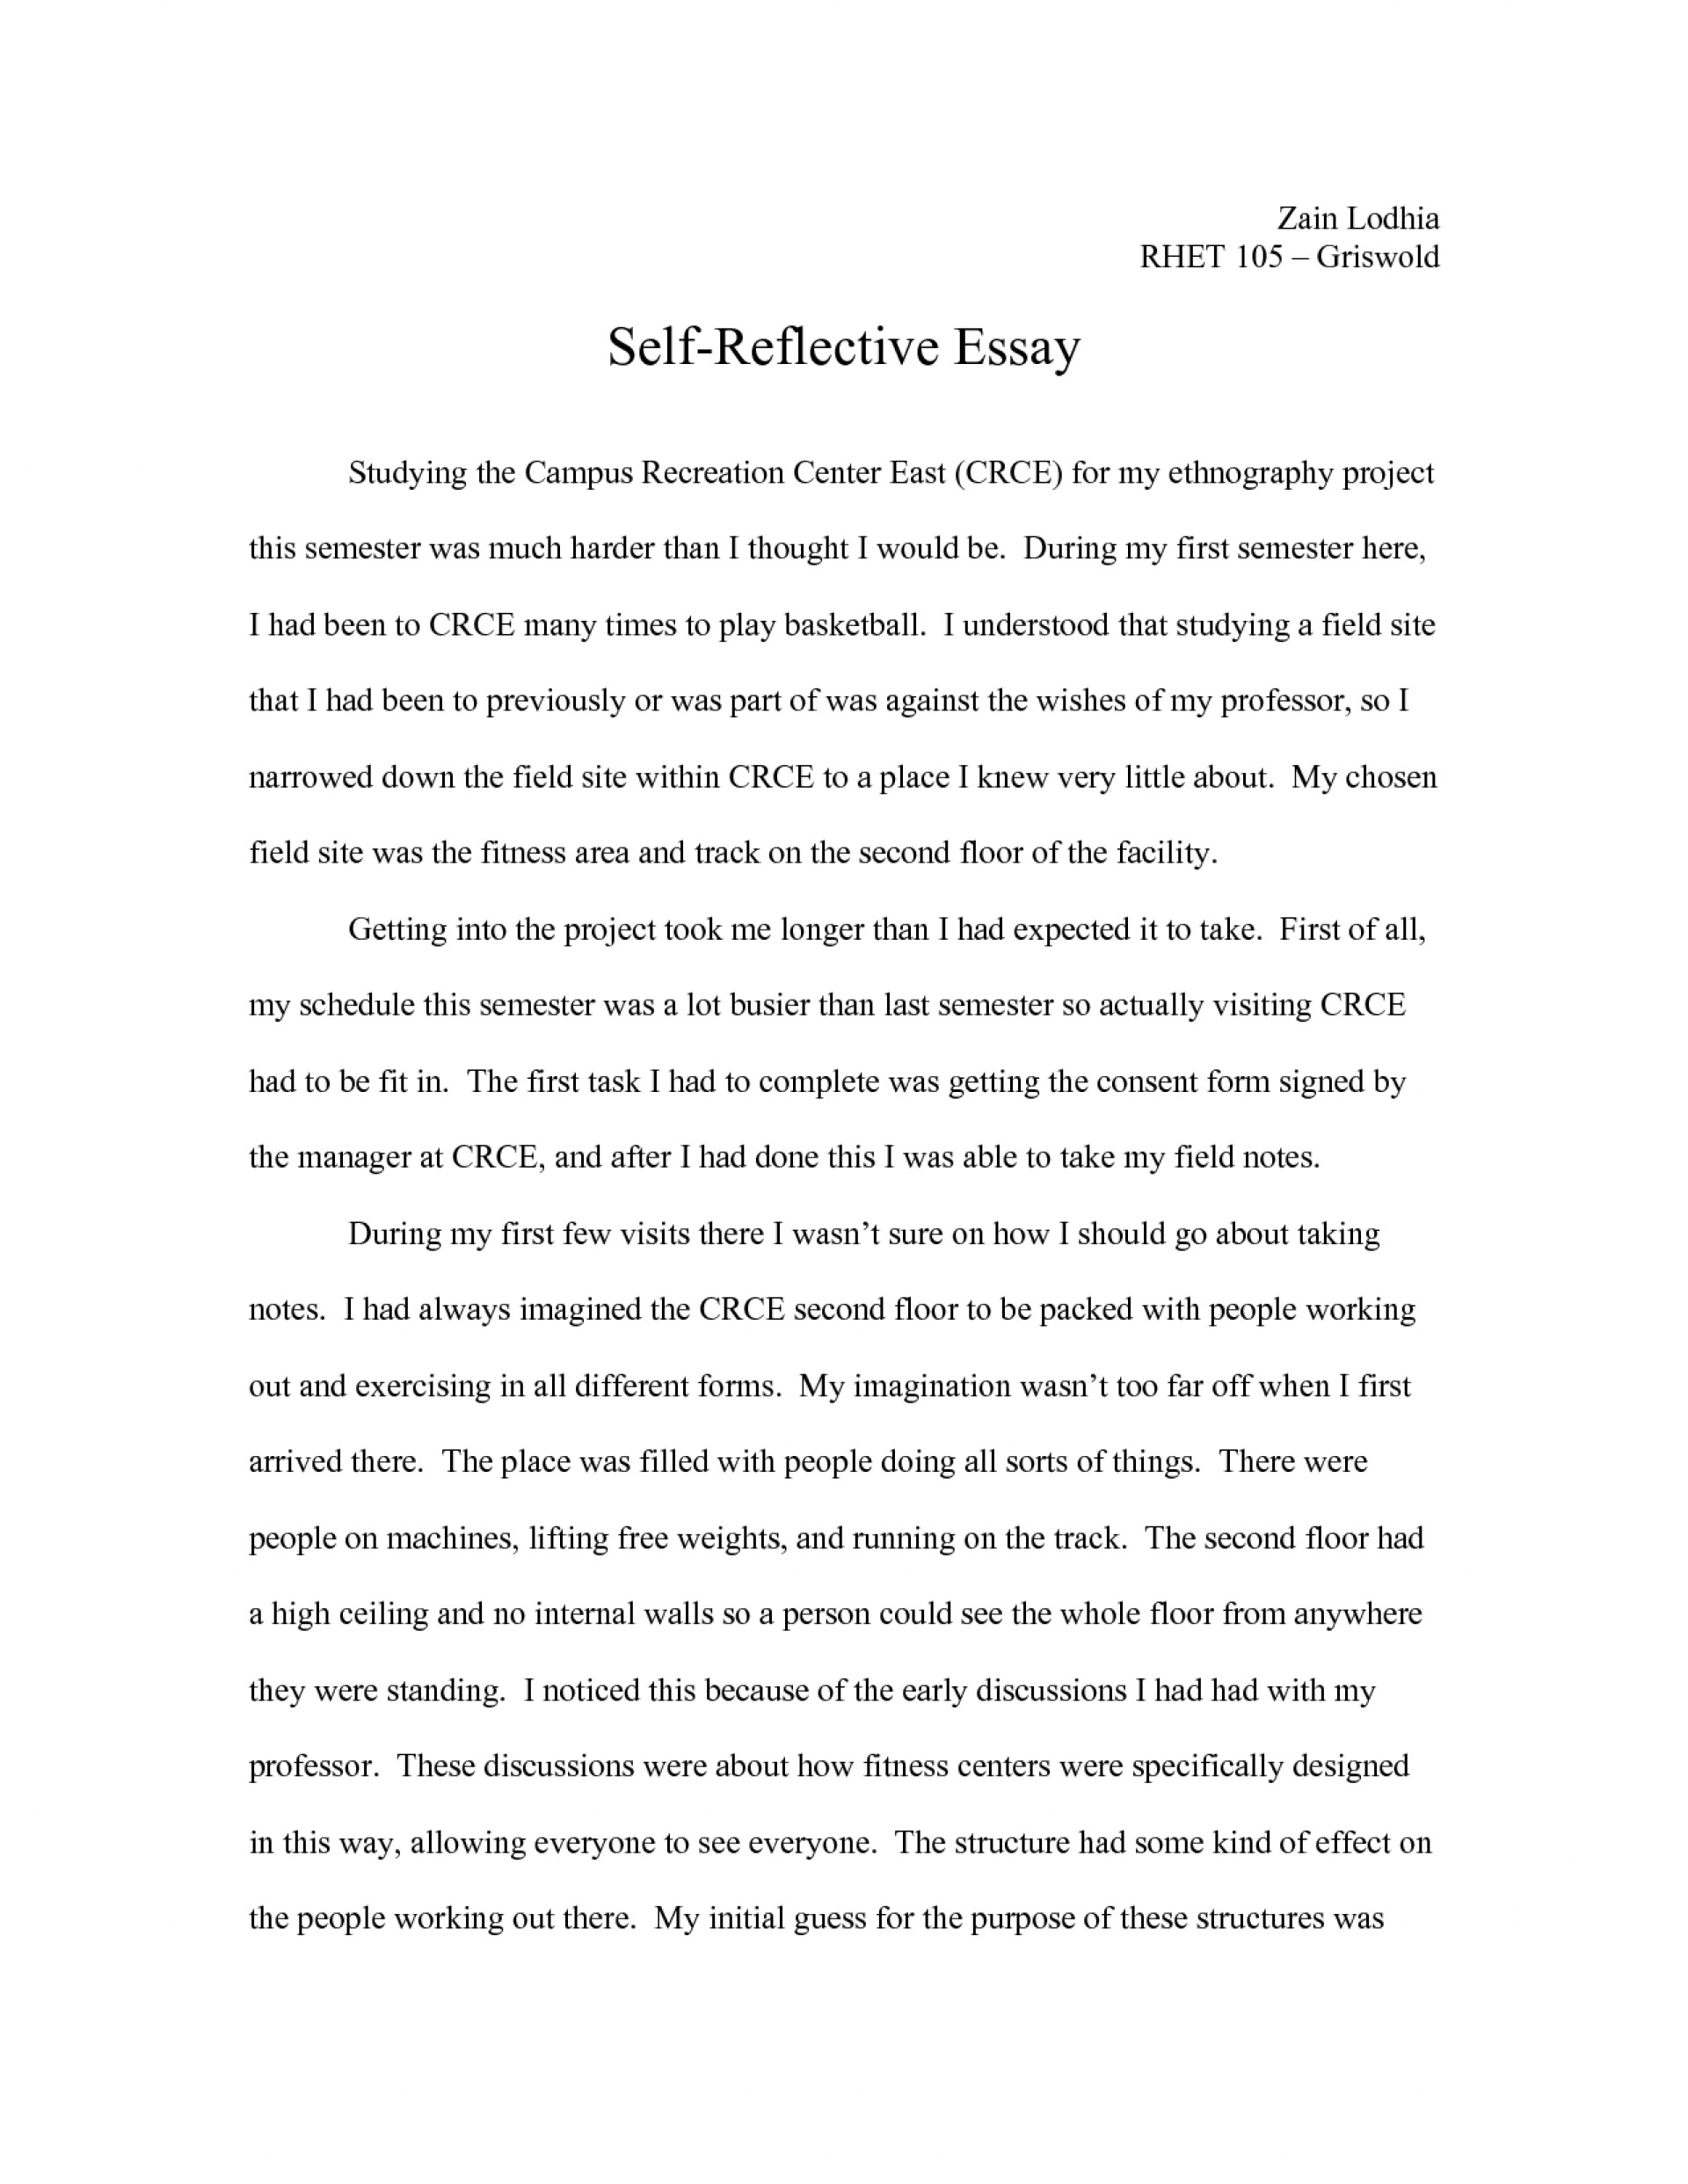 003 Qal0pwnf46 Reflective Essays Beautiful Essay Examples About Life Pdf Apa 1920